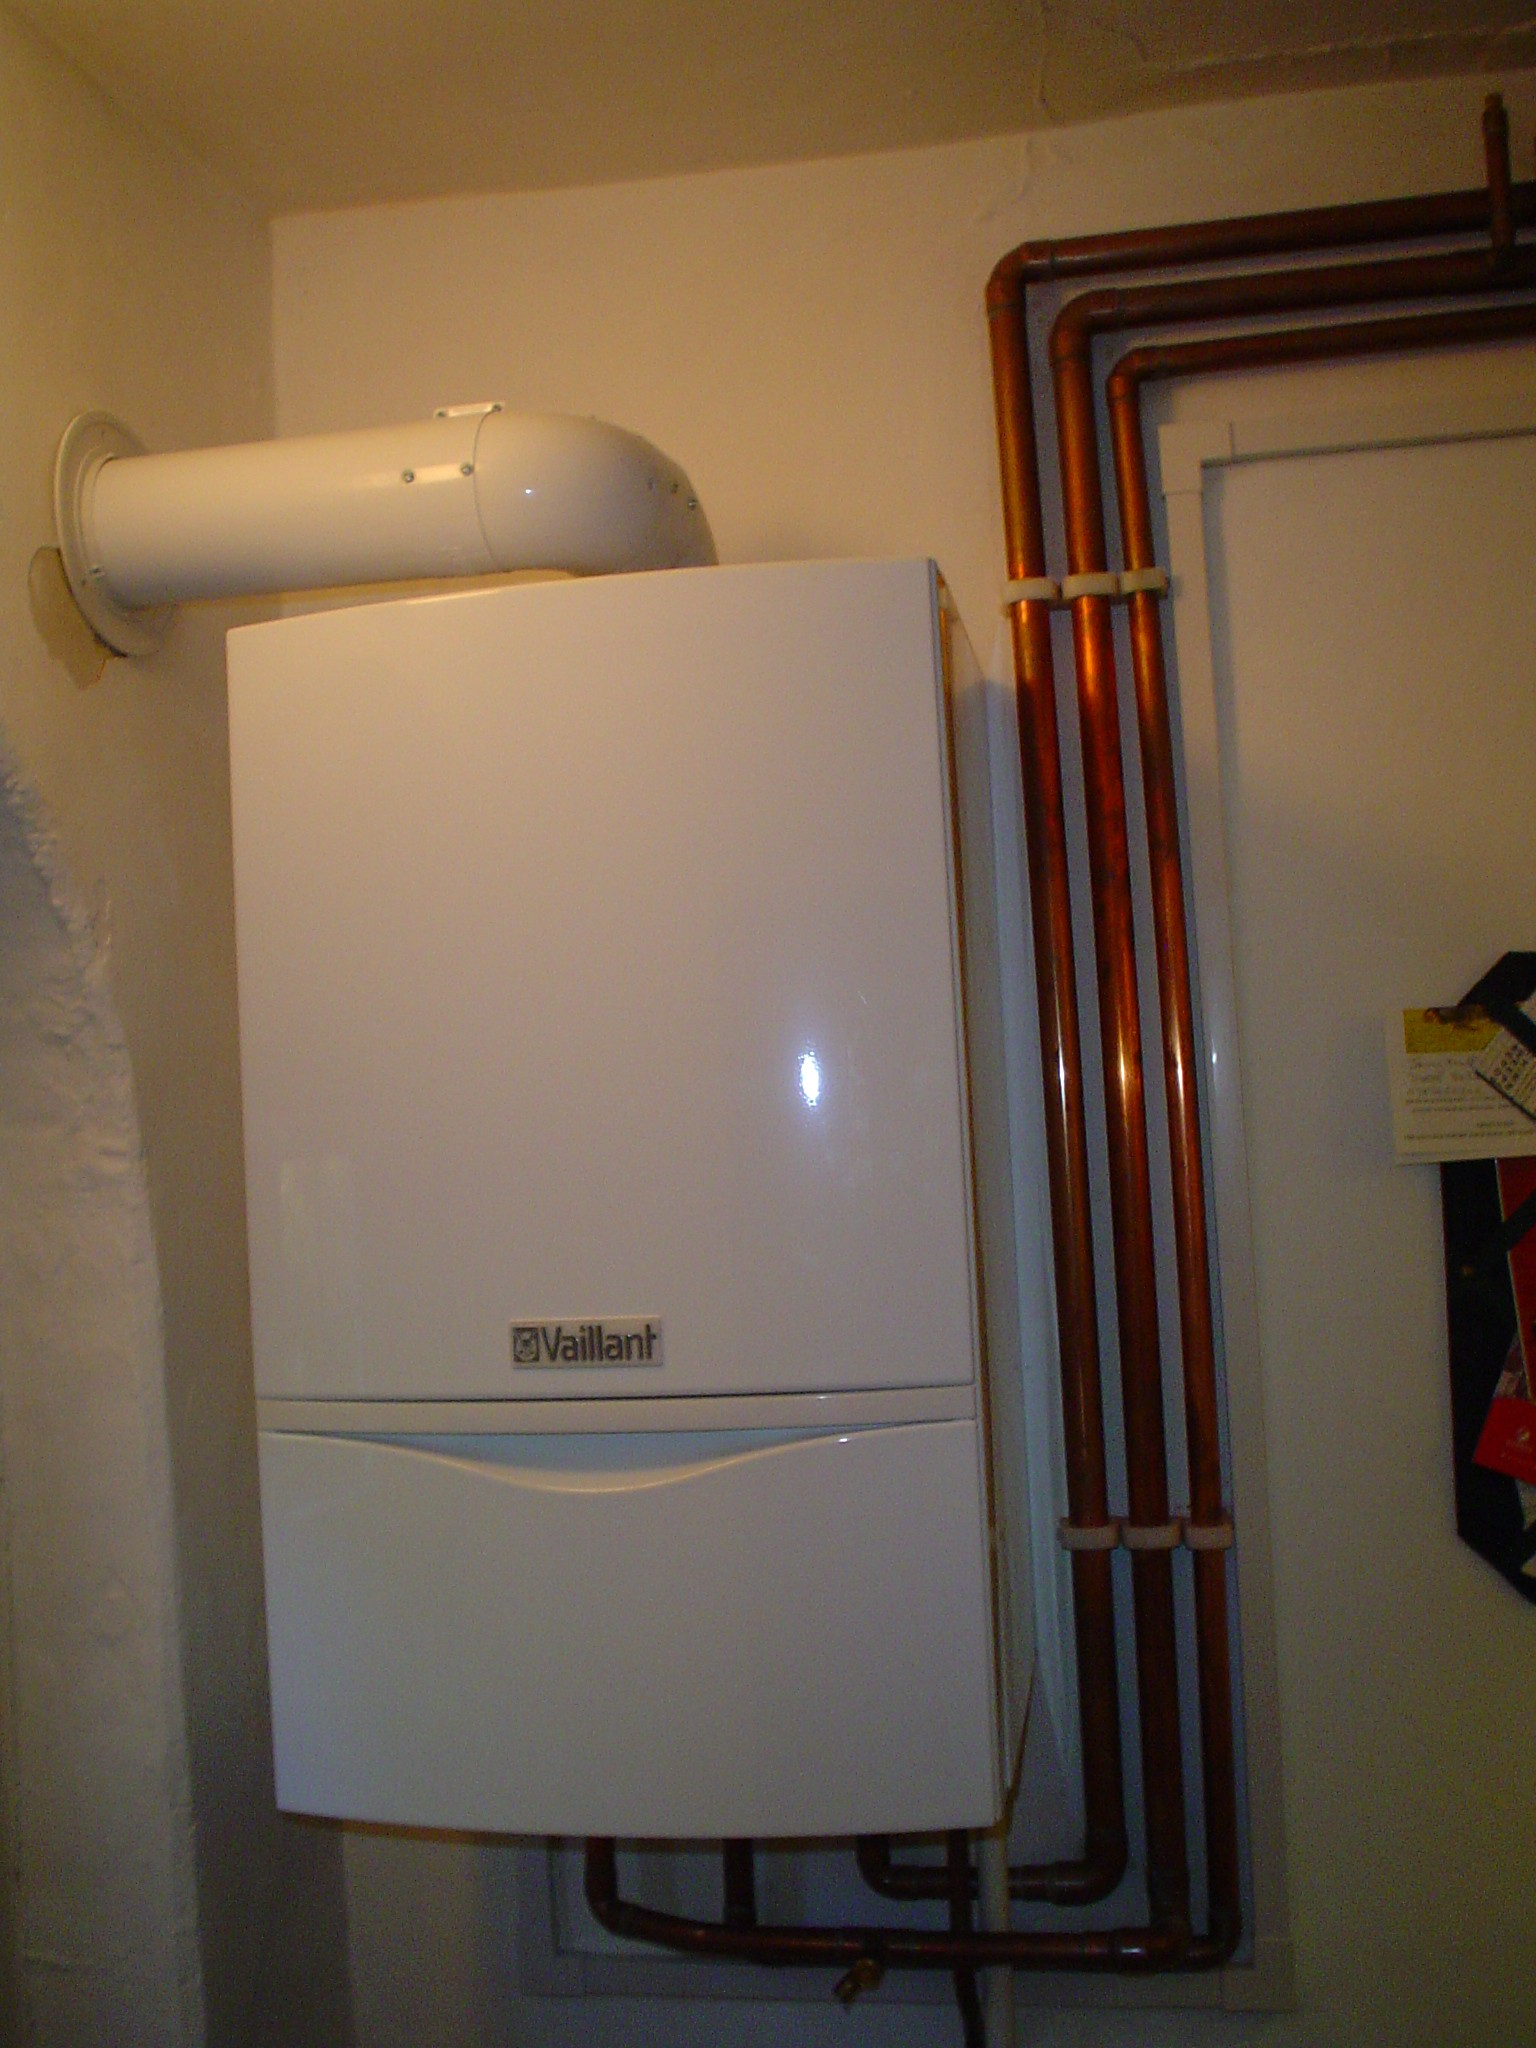 vaillant boiler and back to school radiators hot water. Black Bedroom Furniture Sets. Home Design Ideas